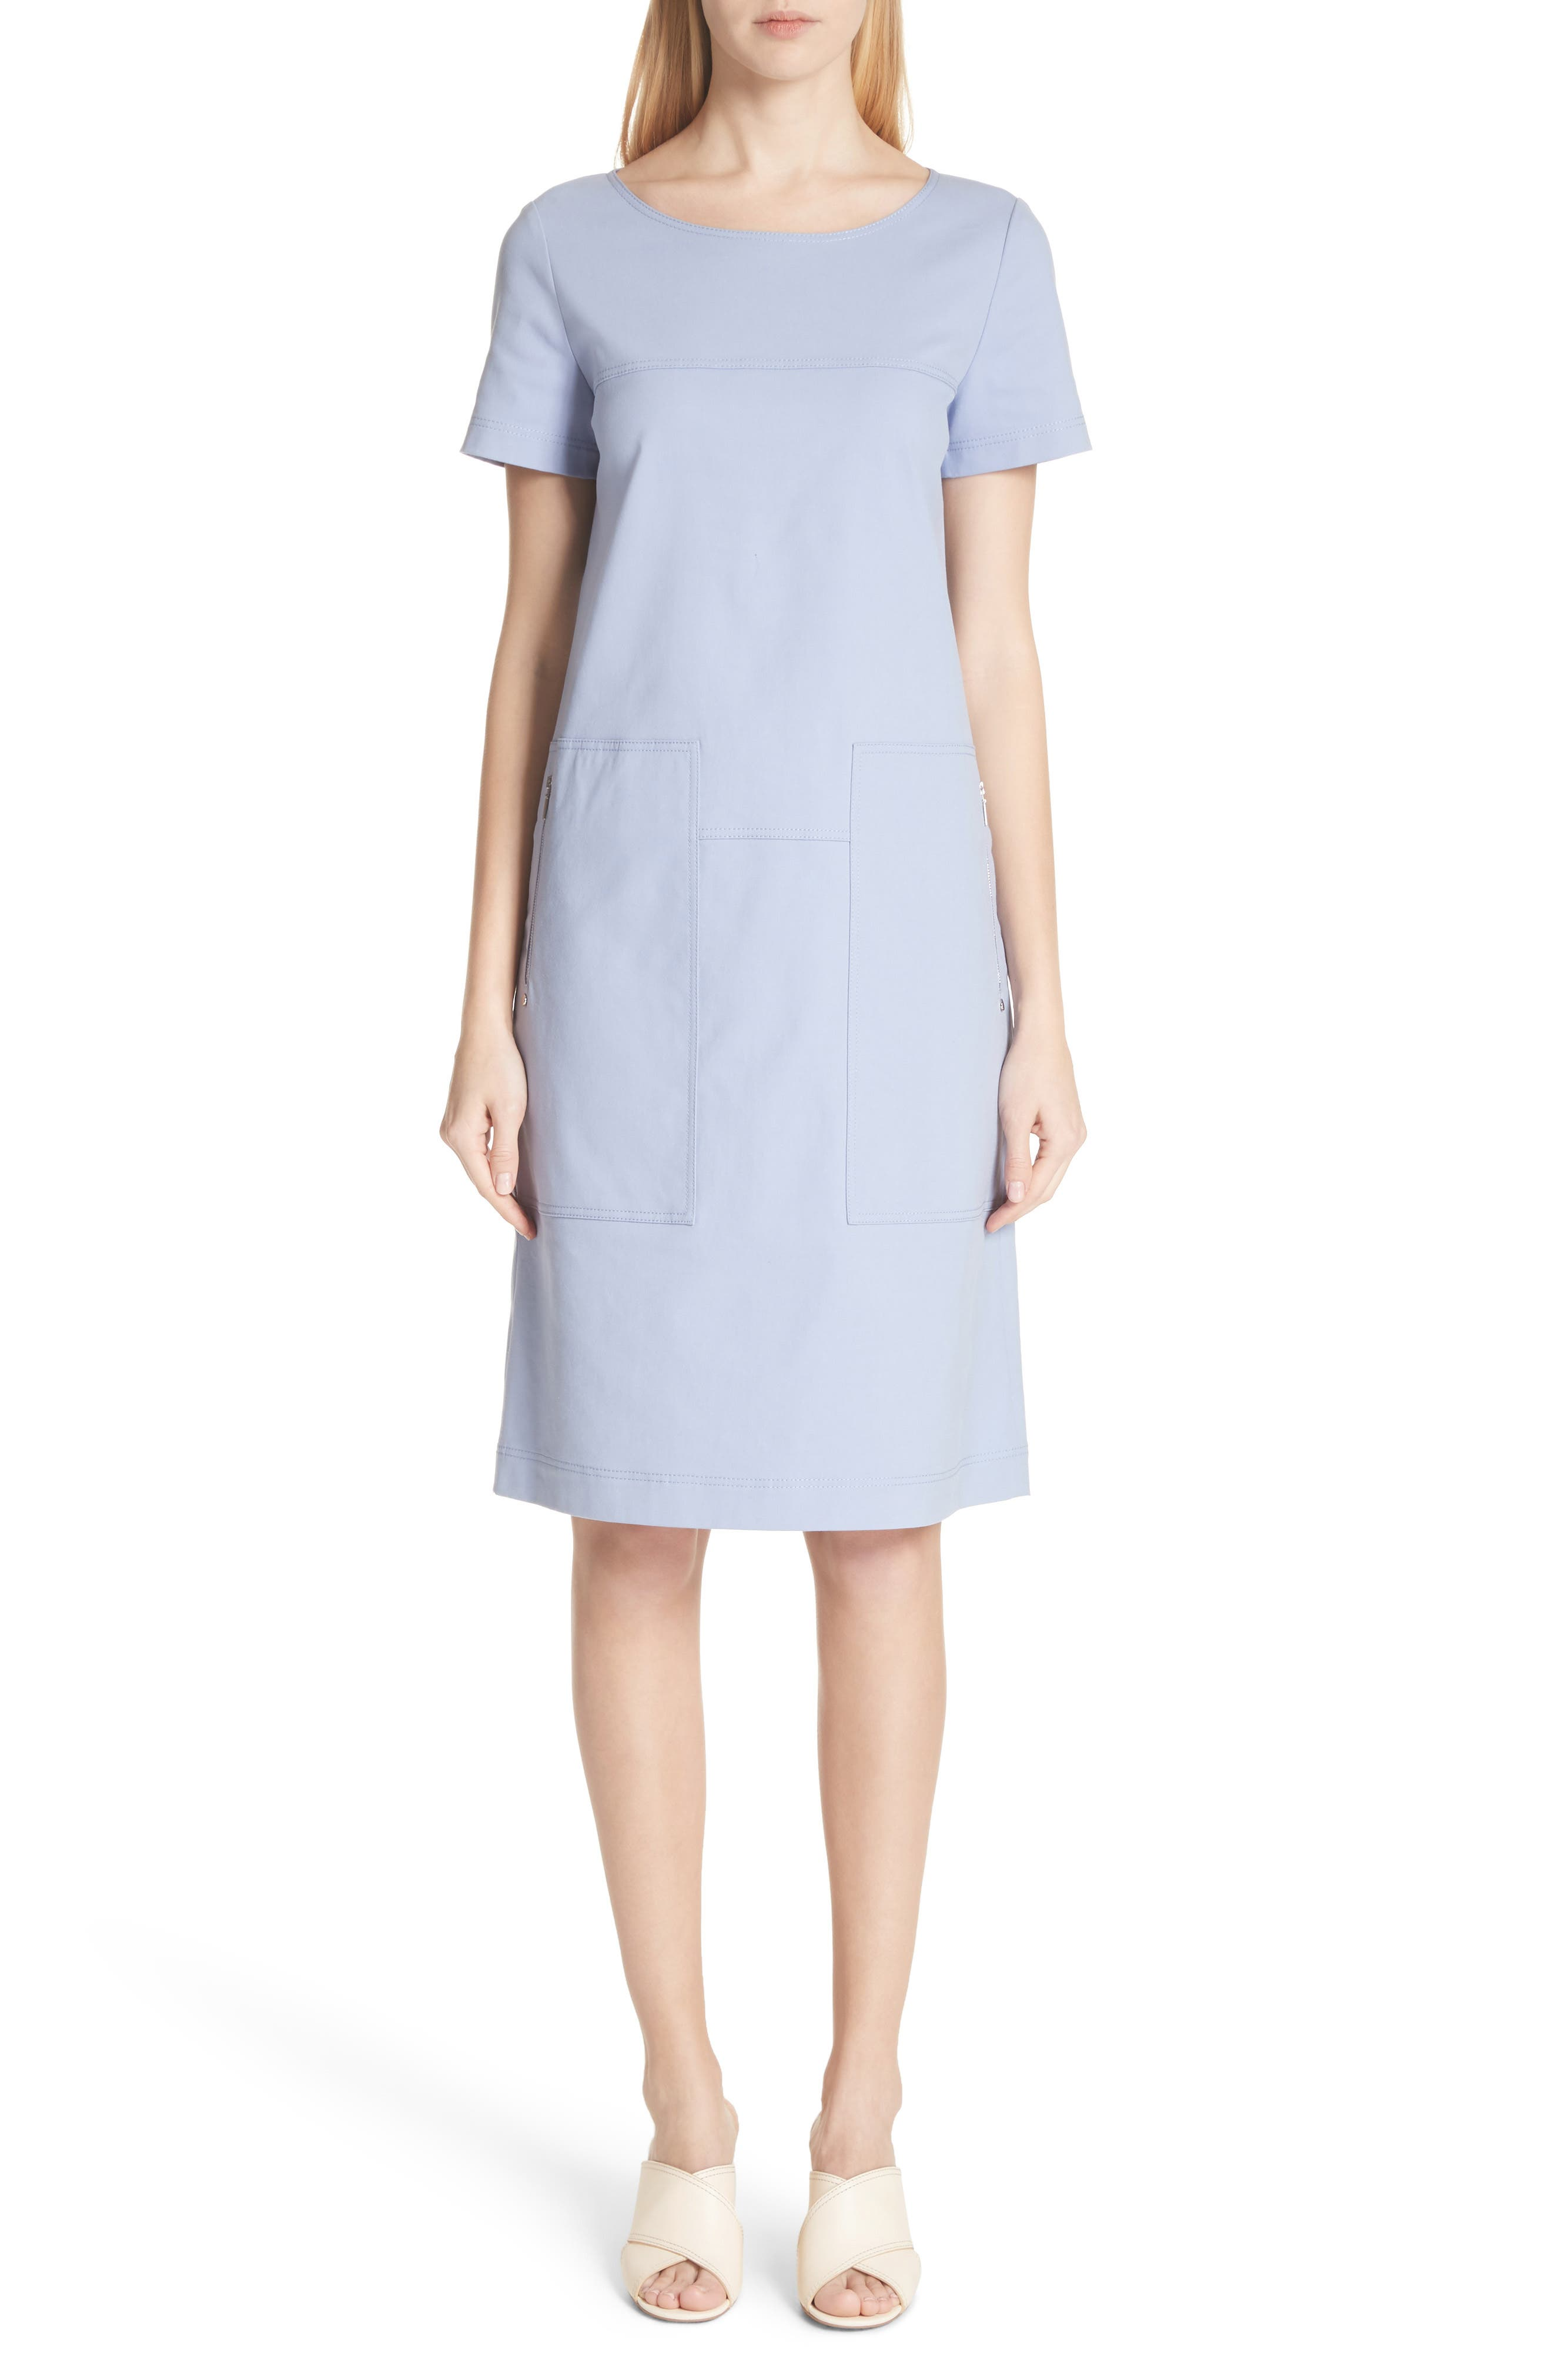 Farah Catalina Stretch Canvas Dress,                             Main thumbnail 1, color,                             Periwinkle